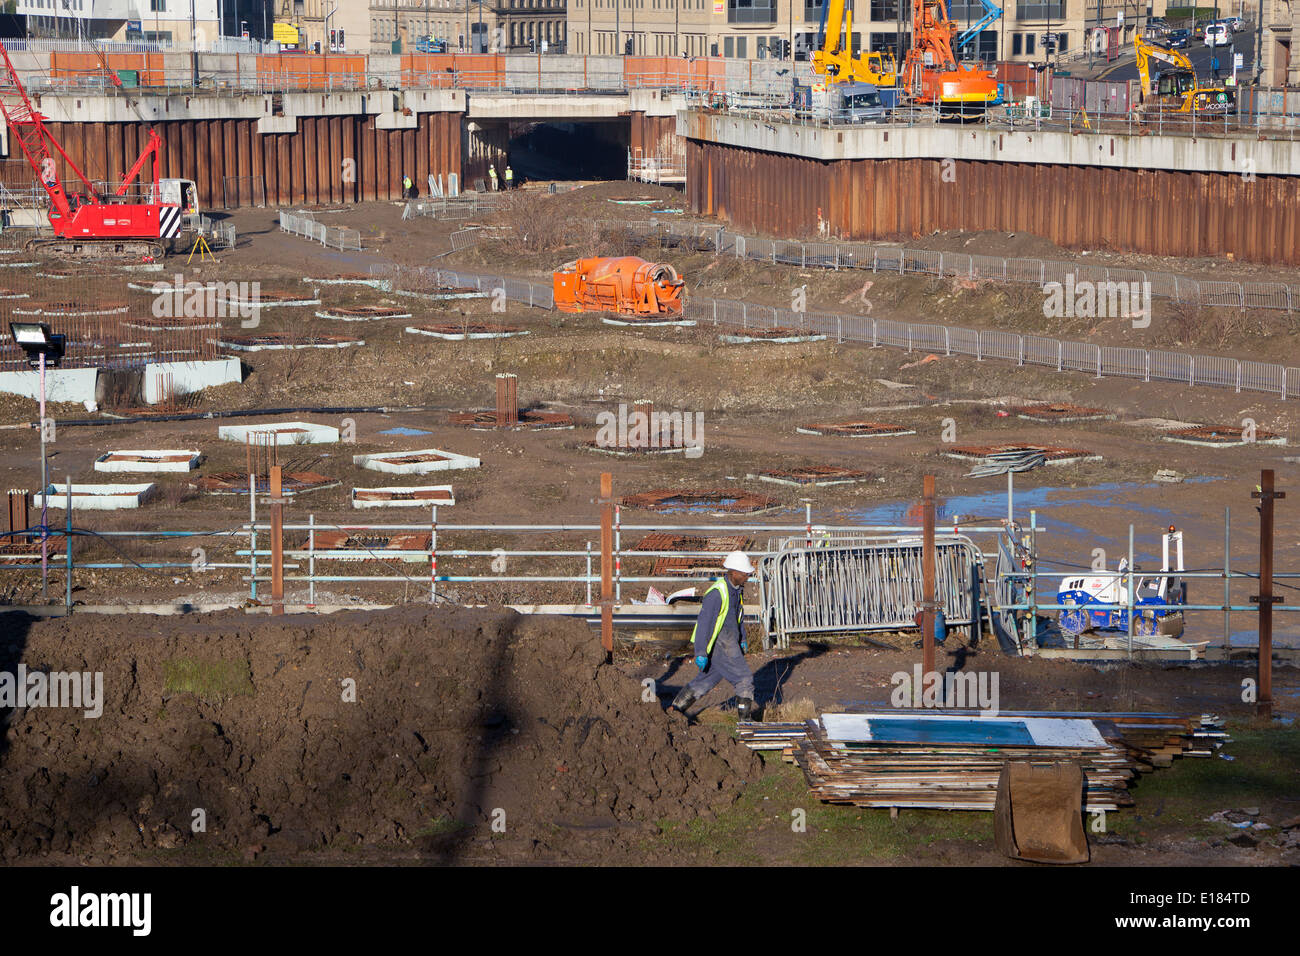 Construction underway on Bradford's Westfield development after almost 10 years of inactivity. - Stock Image